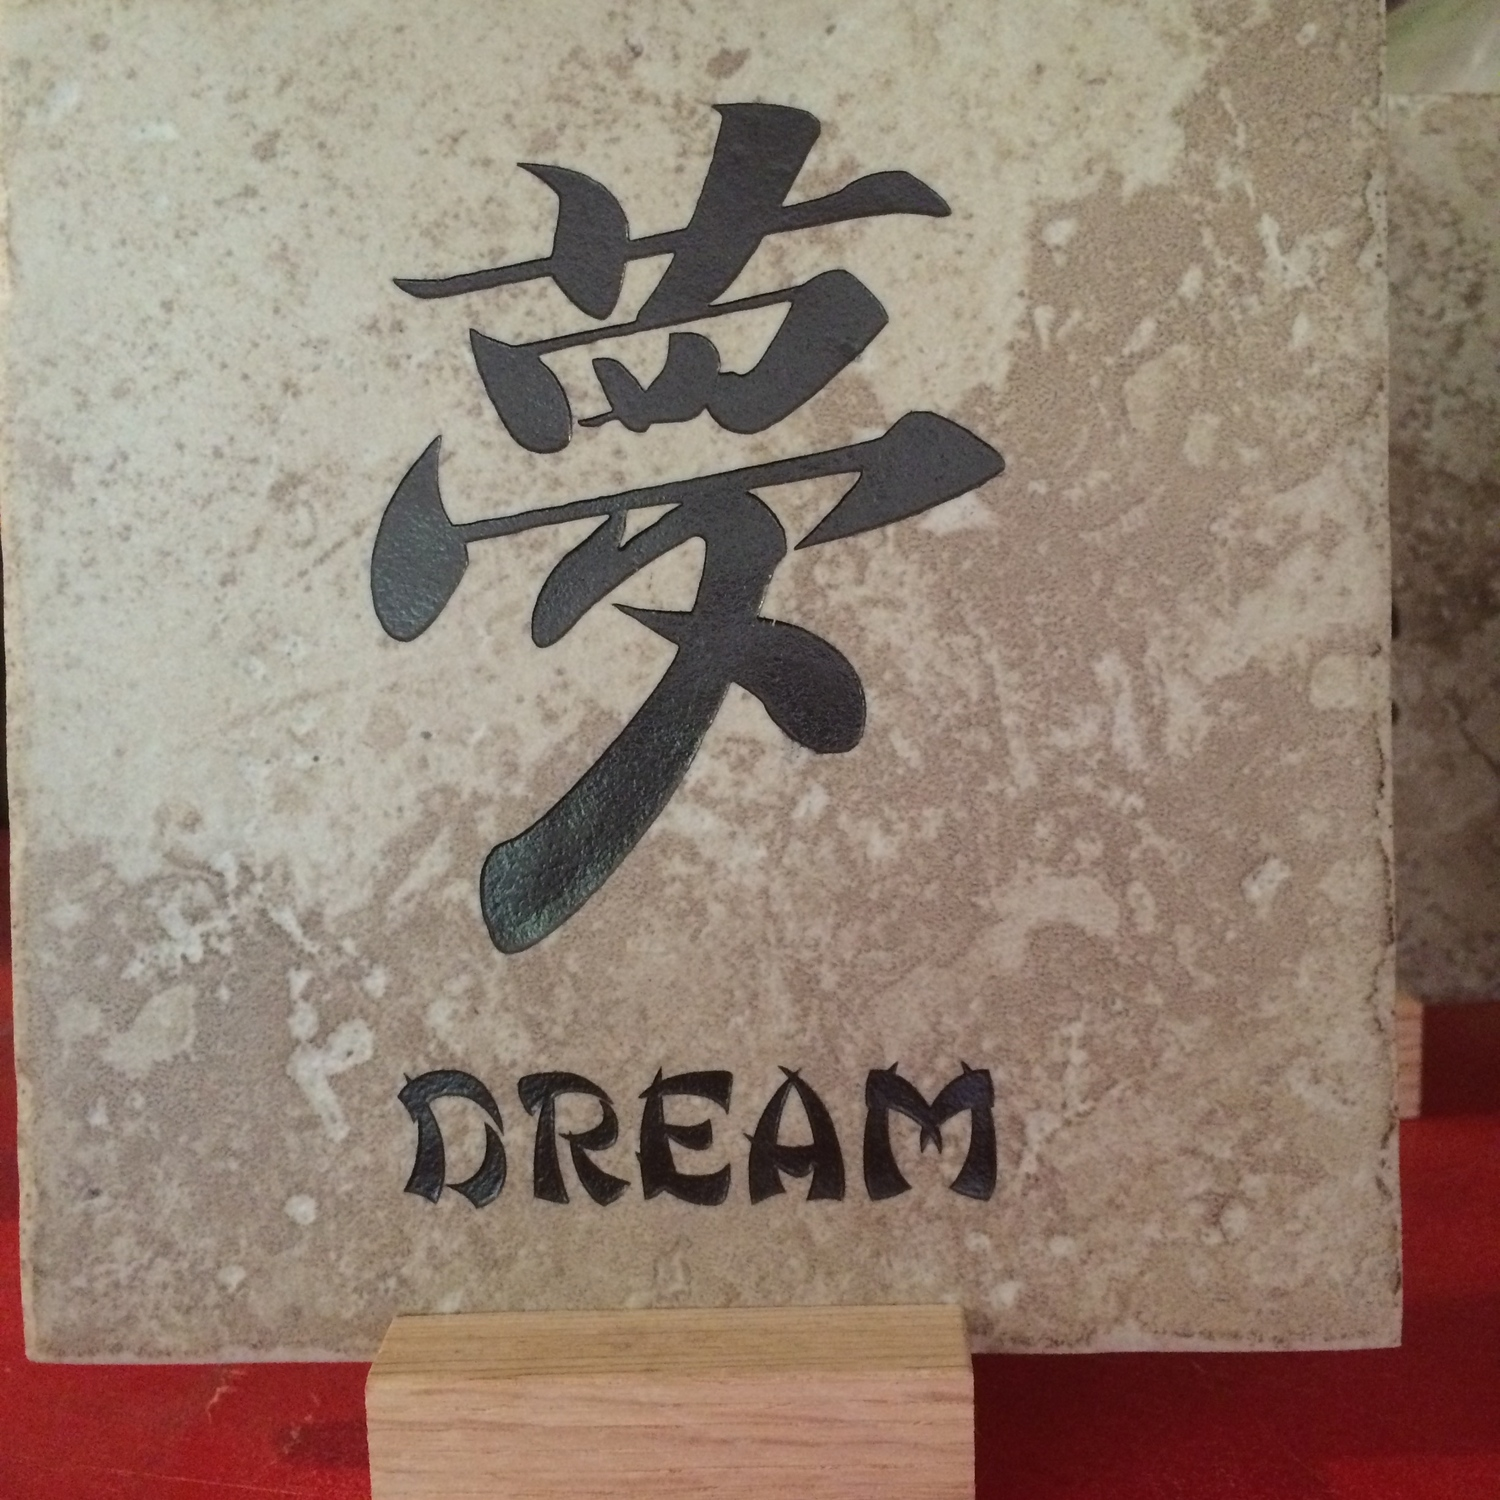 Tiles decorated with Mandarin words